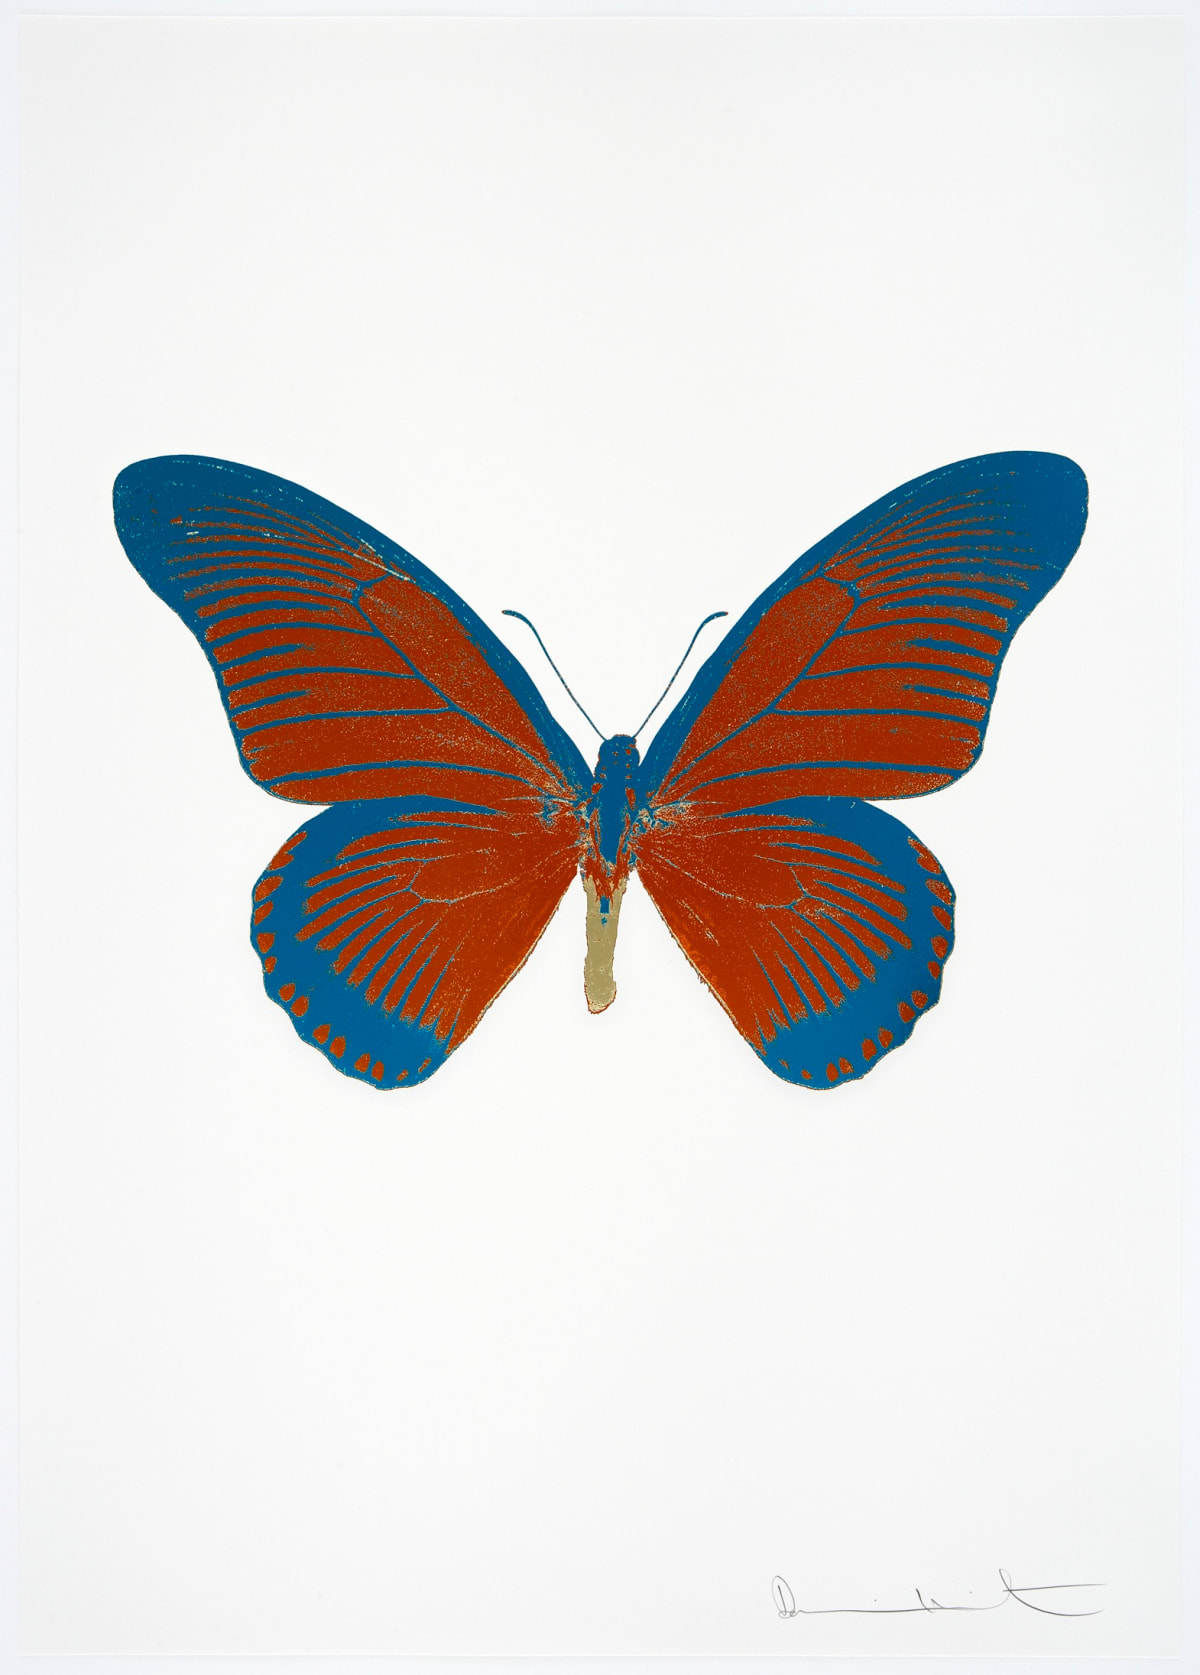 Damien Hirst The Souls IV - Prairie Copper/Turquoise/Cool Gold, 2010 3 colour foil block on 300gsm Arches 88 archival paper. Signed and numbered. Published by Paul Stolper and Other Criteria 72 x 51cm OC8052 / 1418-75 Edition of 15